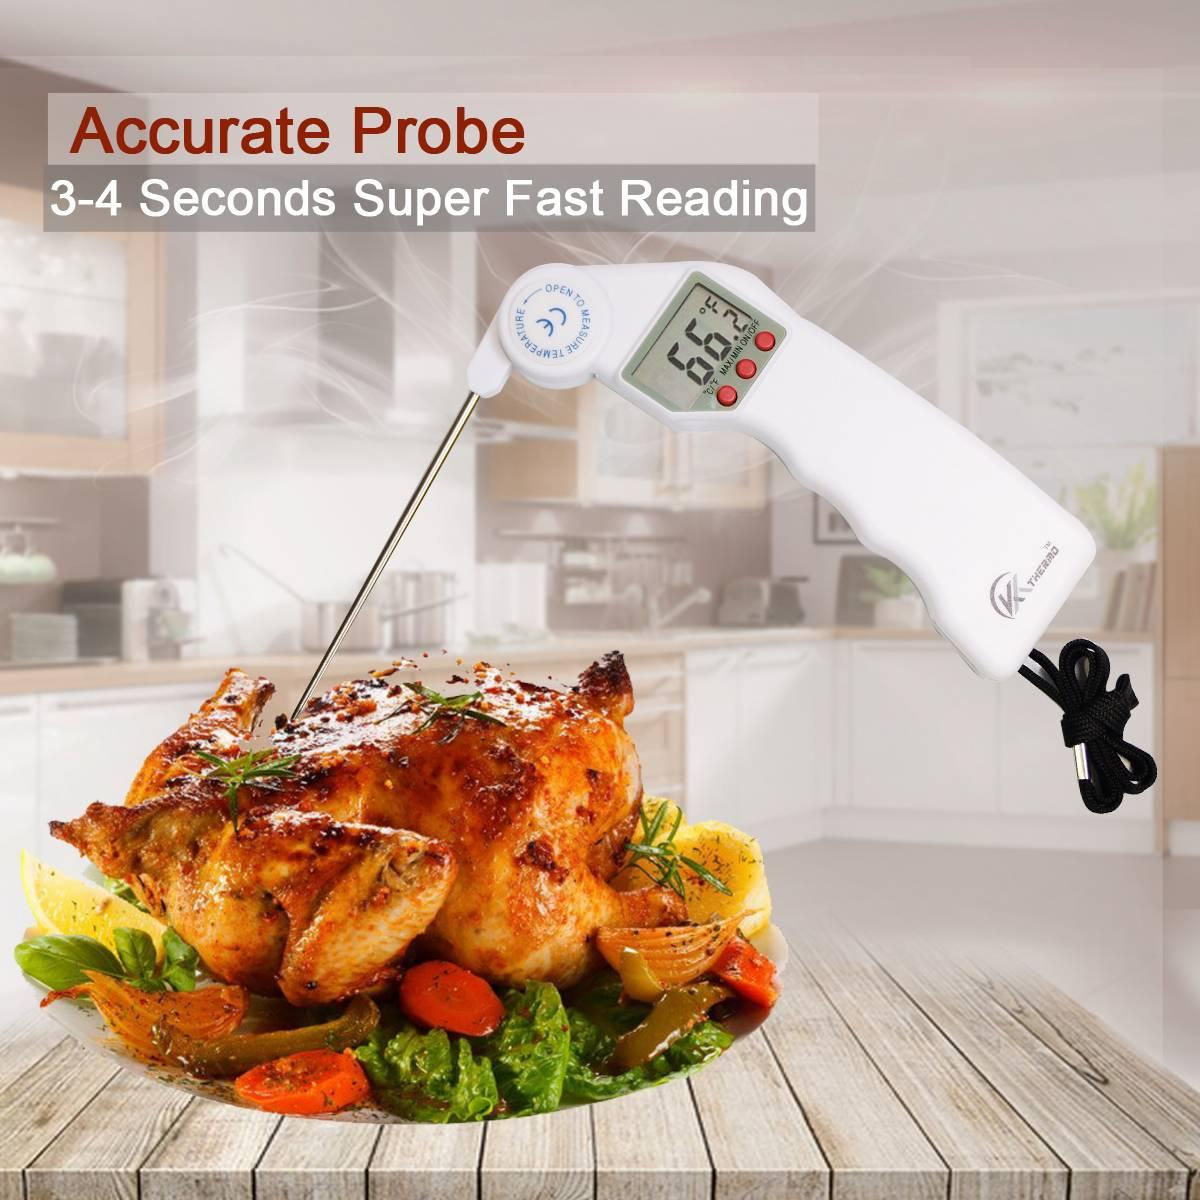 KT THERMO Instant Read Digital Thermometer Super Fast Meat Thermometer with Digital LCD Long Folding Probe for Cooking BBQ